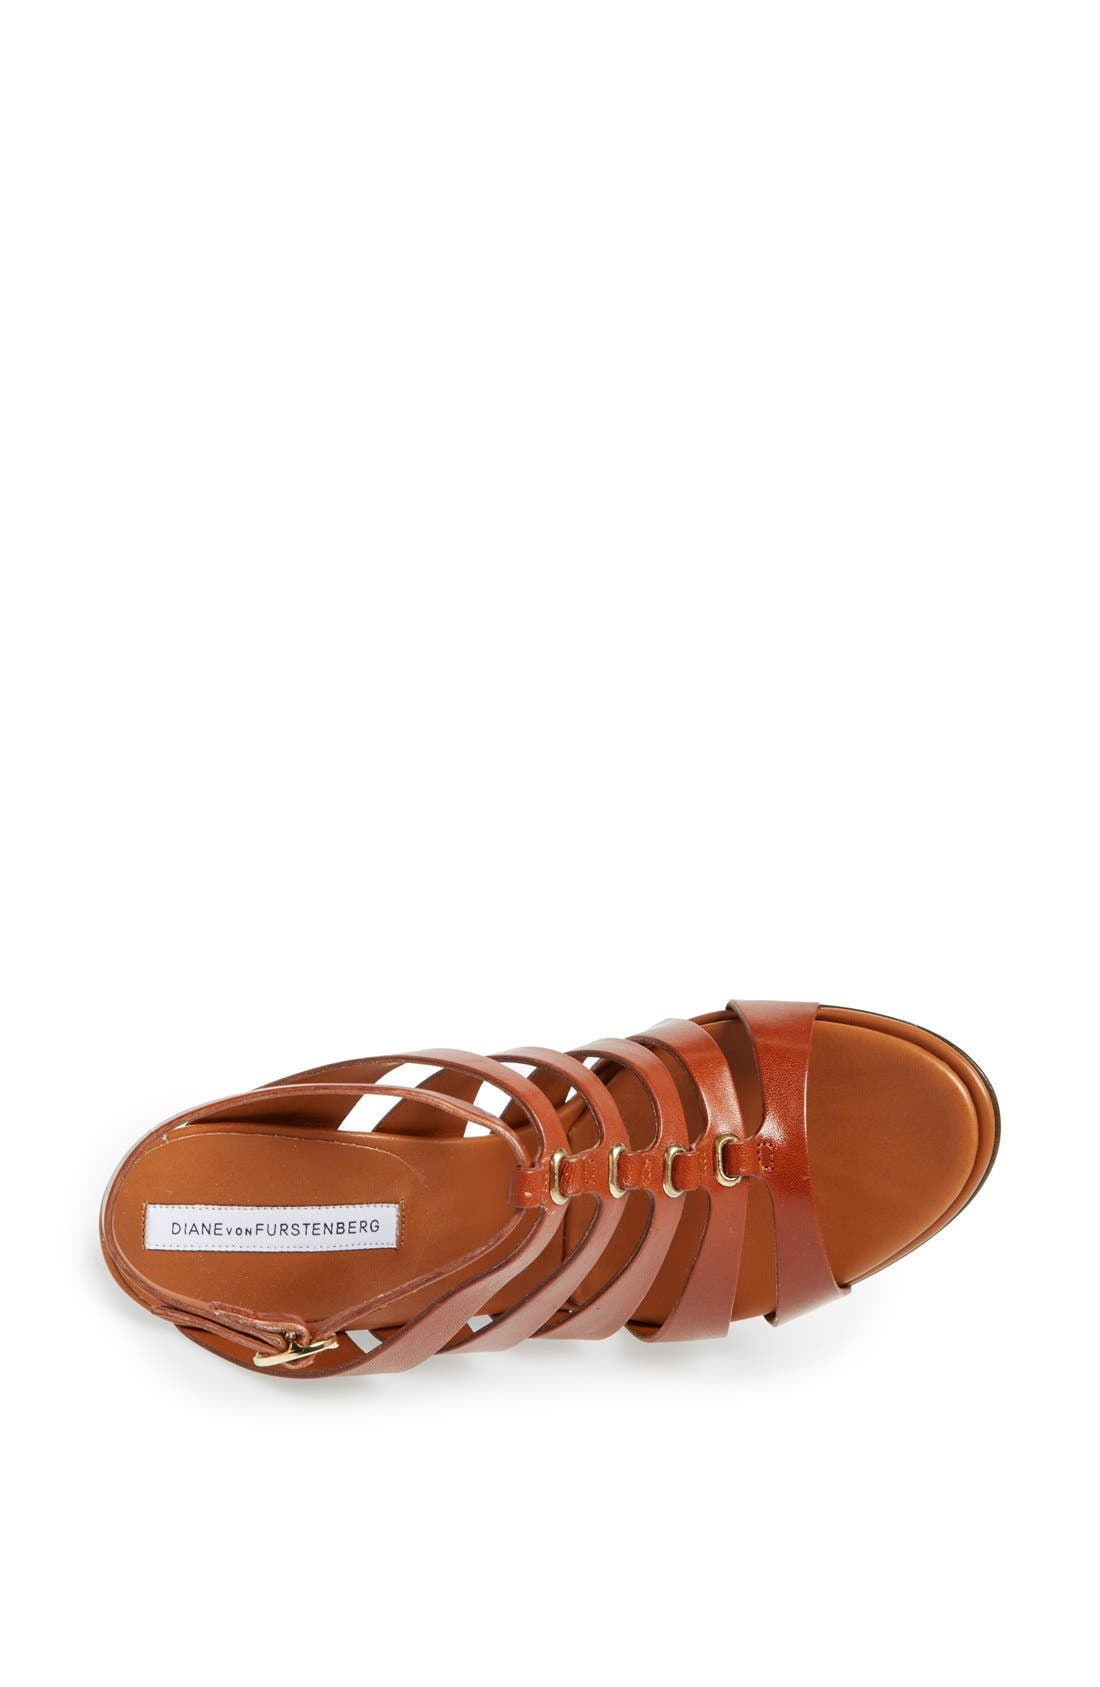 Alternate Image 3  - Diane von Furstenberg 'Wave' Wedge Sandal